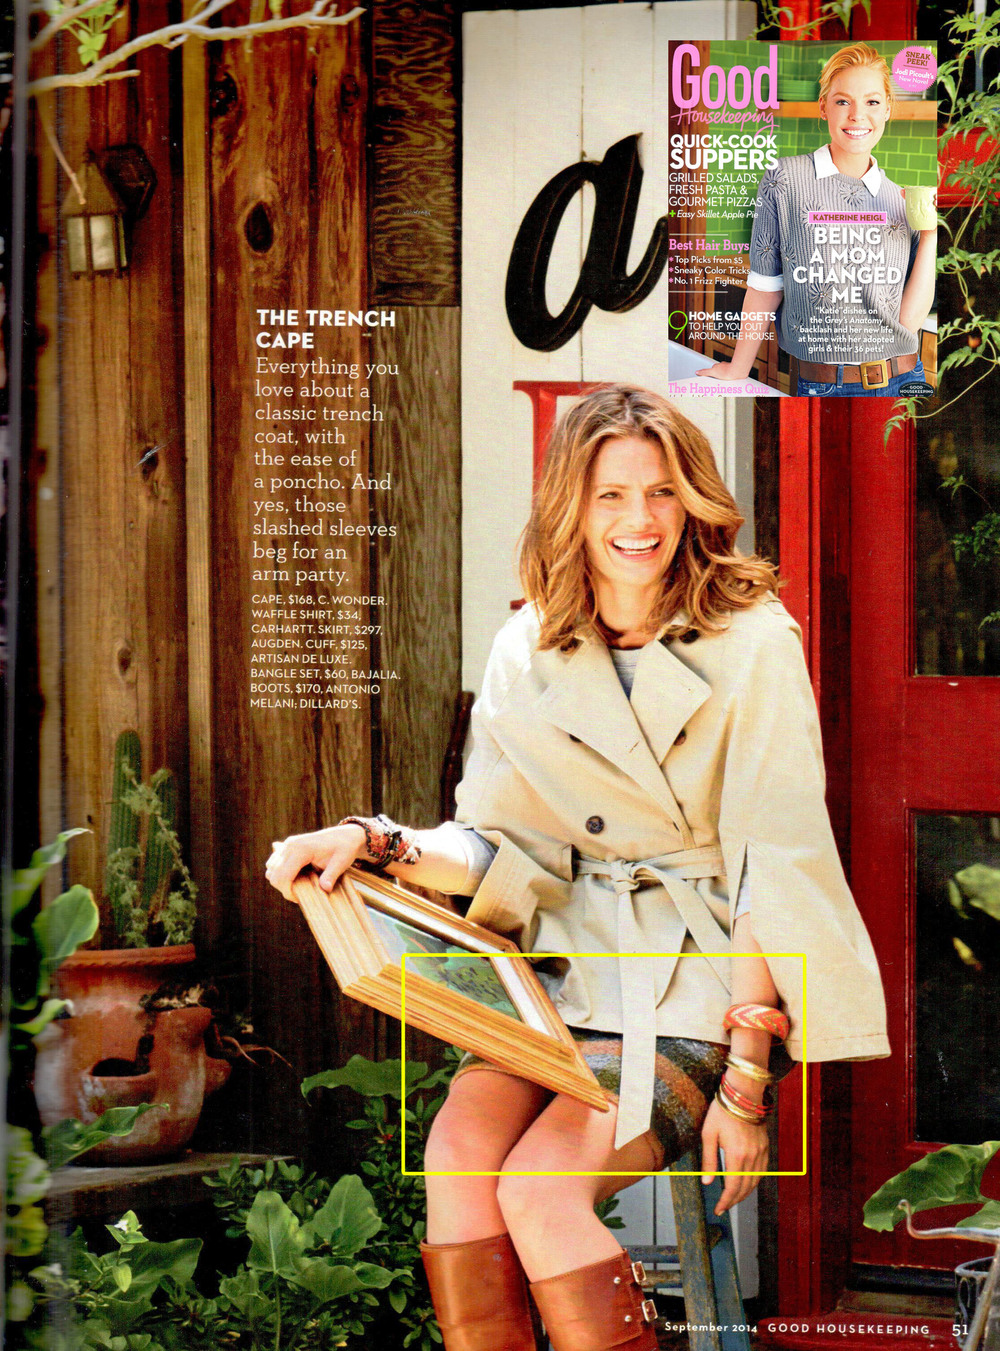 goodhousekeeping_sept2014 copy.jpg